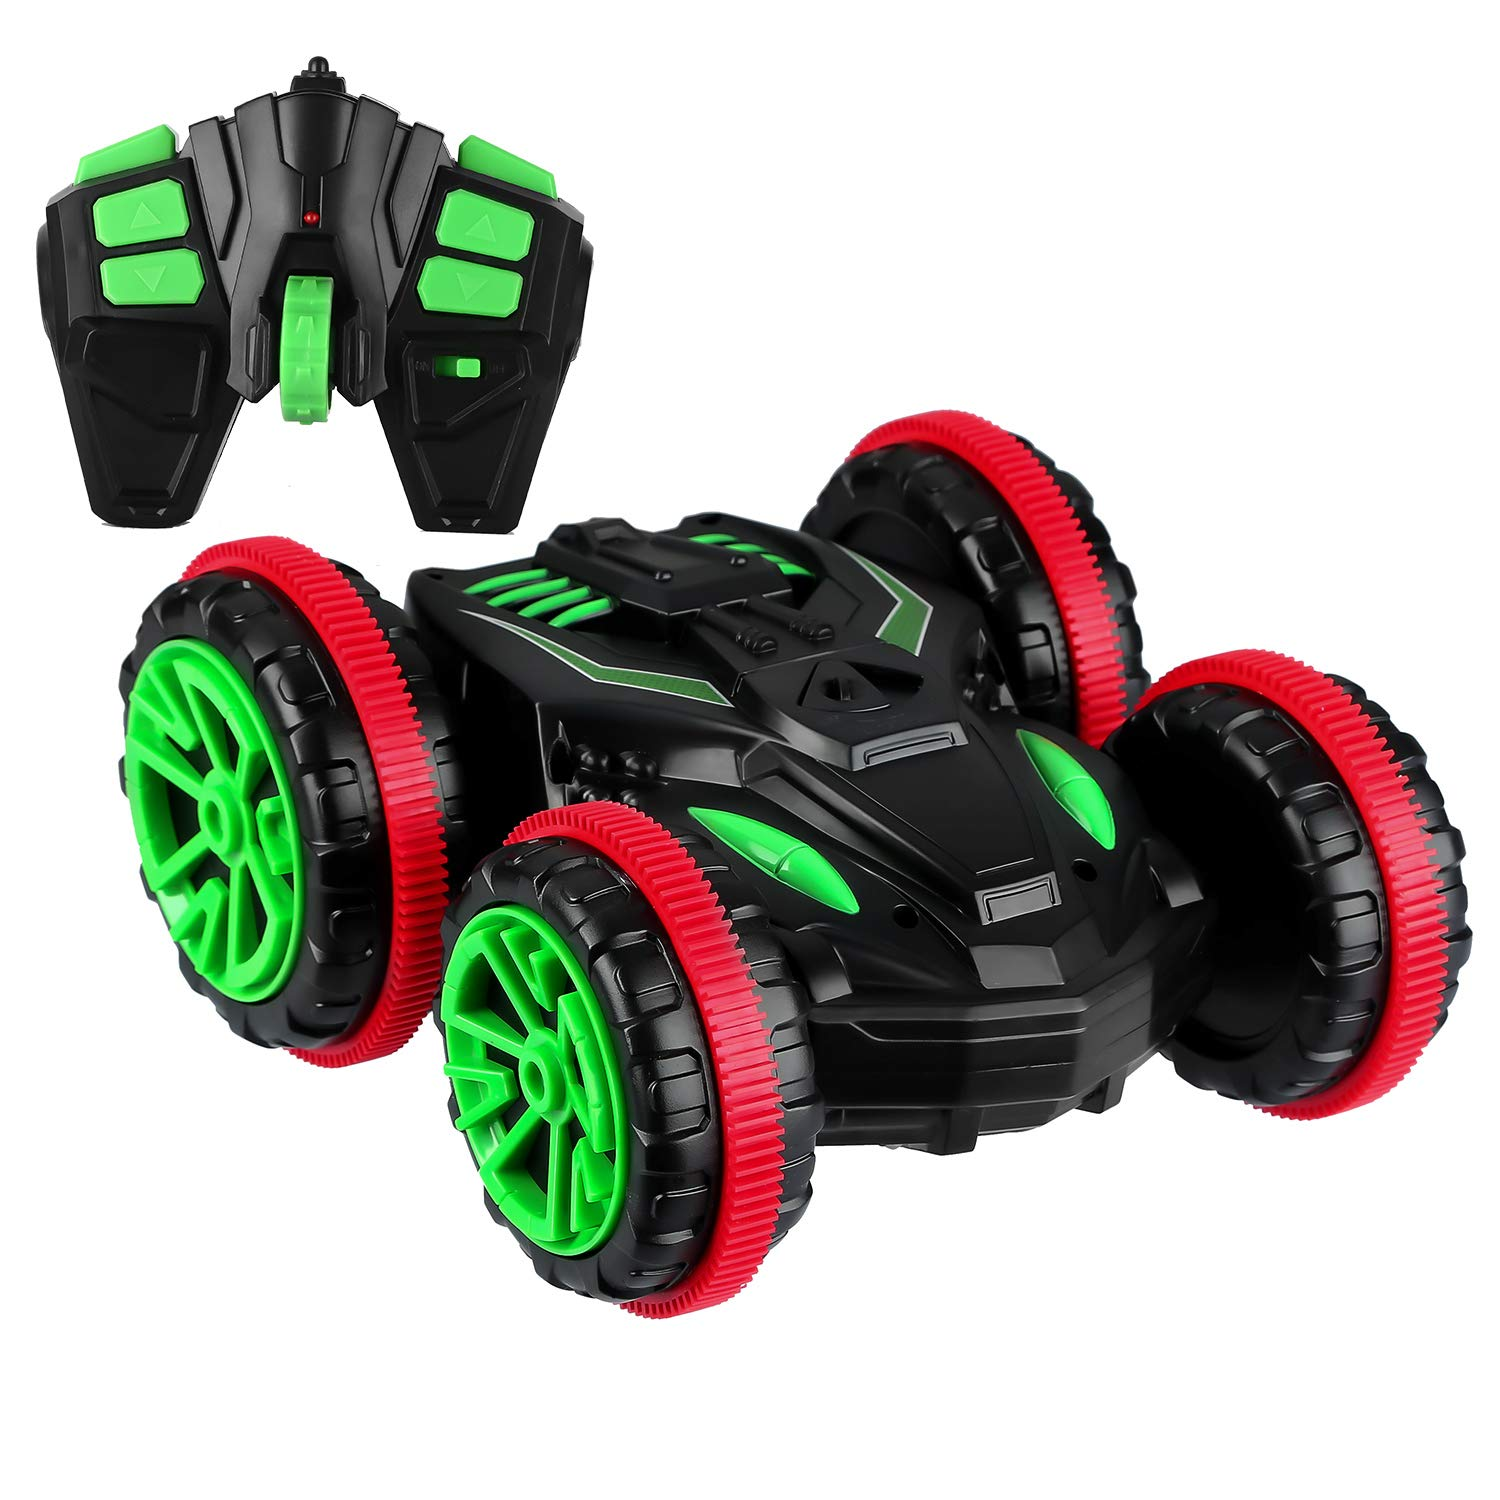 Blexy Remote Control Car Boat RC Stunt Car 4WD 6CH 2.4Ghz Multifunction Amphibious Tank Double Sided Land Water Electric Racing Vehicle 360/° Spins /& Flips